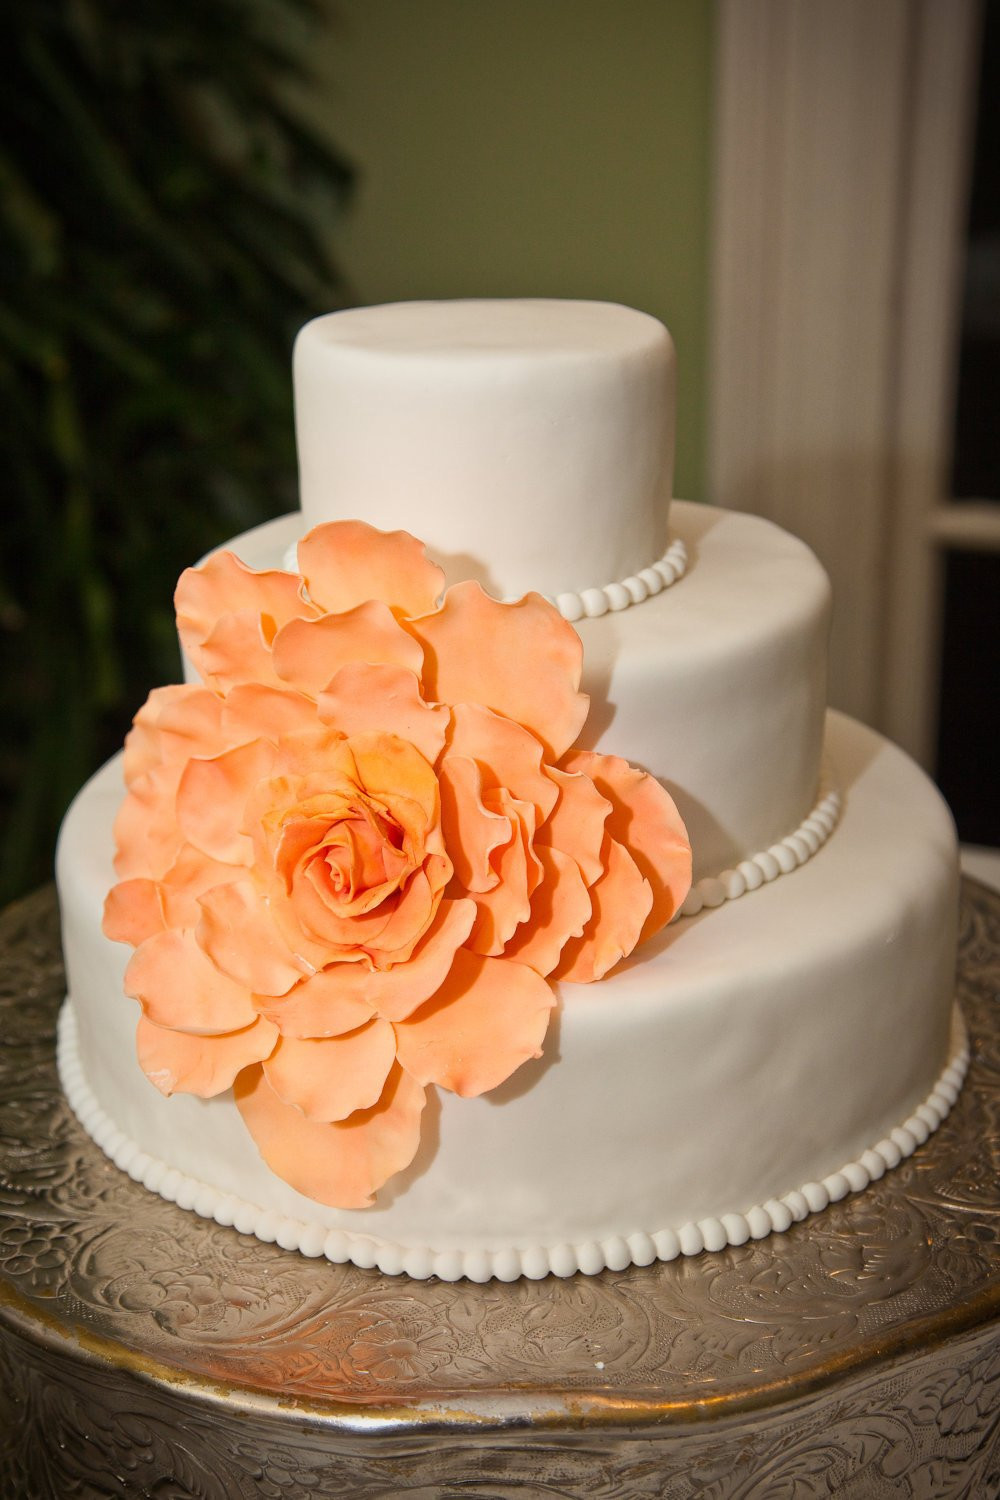 Gumpaste Flowers For Wedding Cakes  Gumpaste Flower for Wedding Cakes edible by